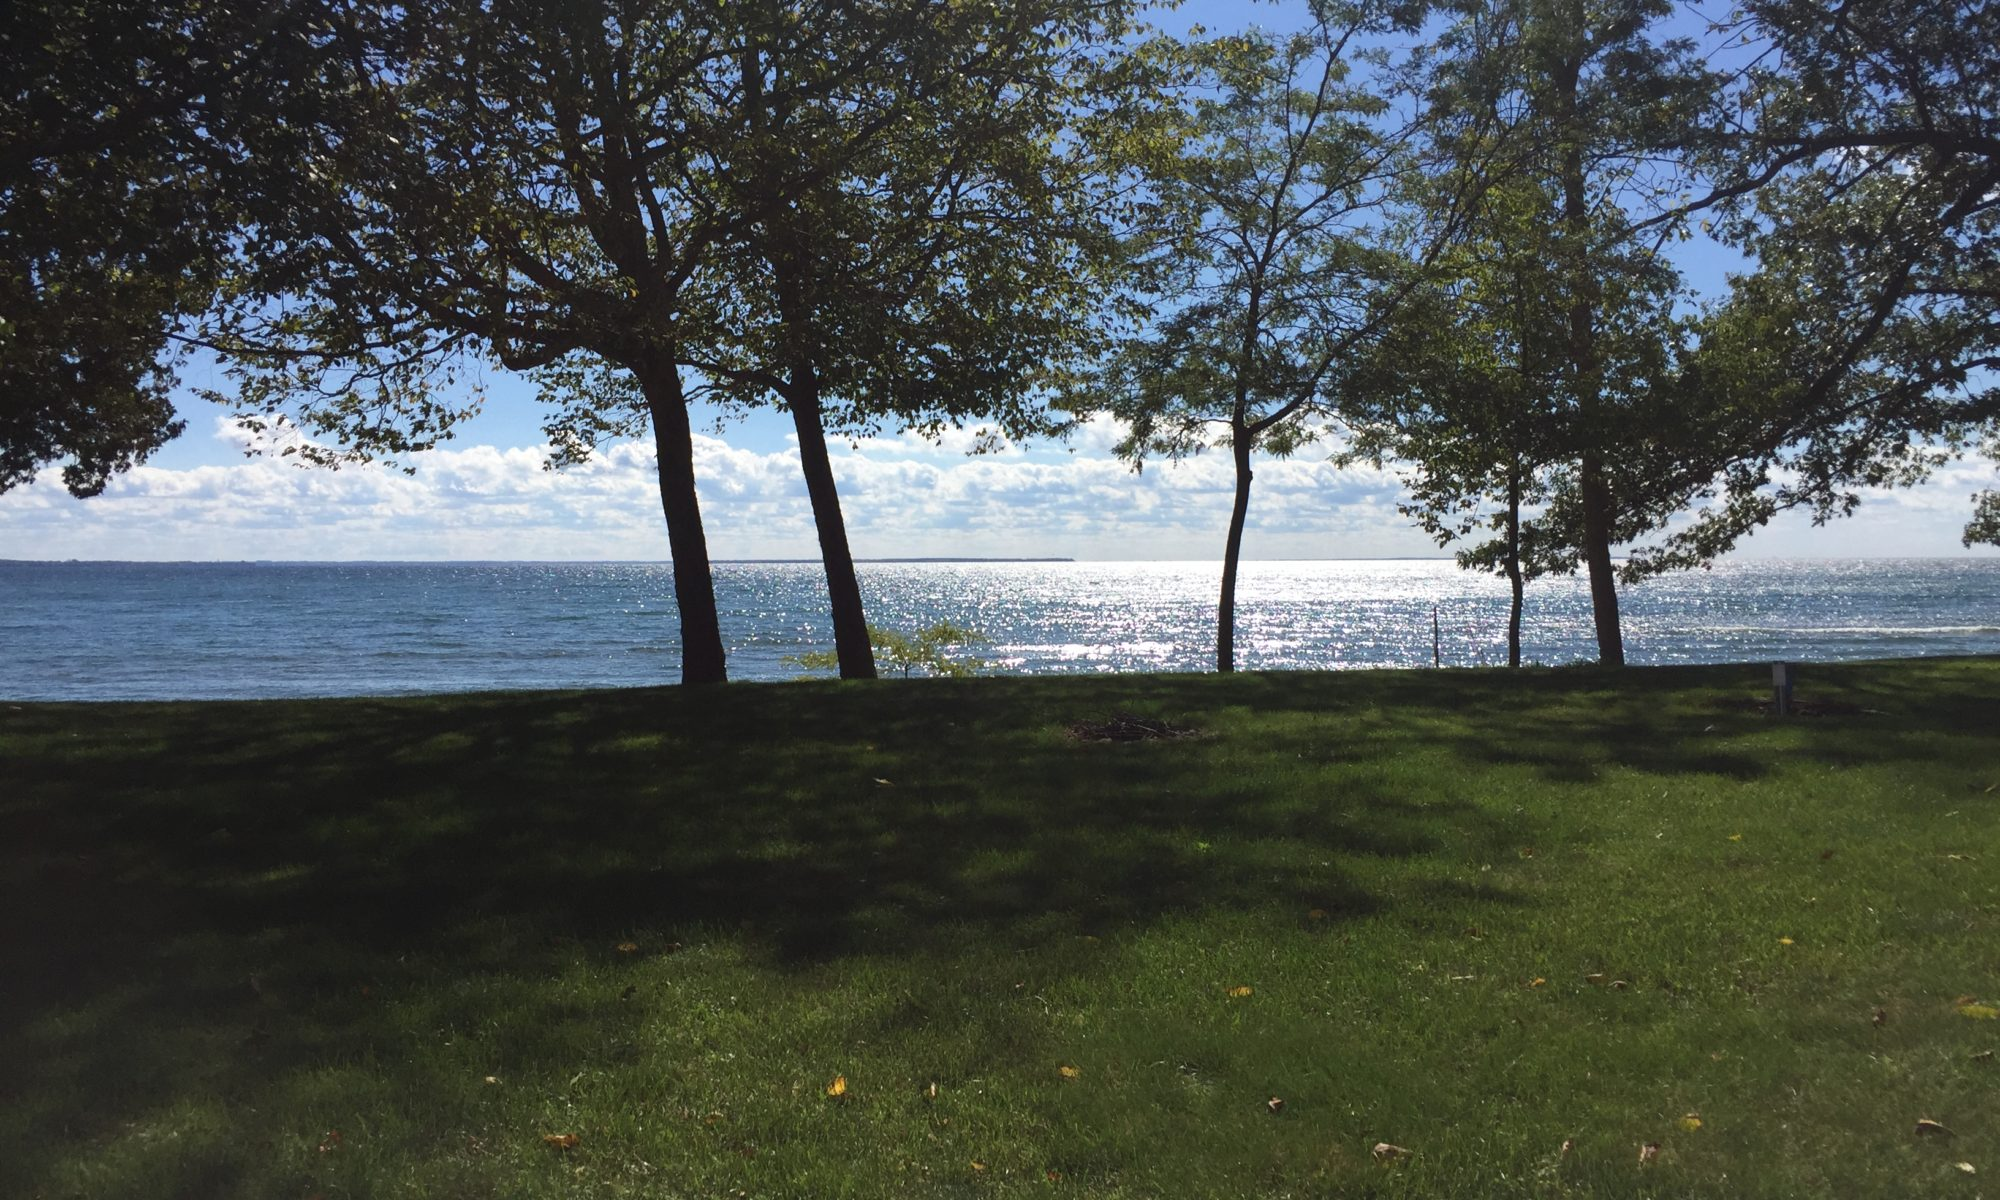 Photo of front lawn and lake of cottage property. Photo Couresty Random Acts of Creativity